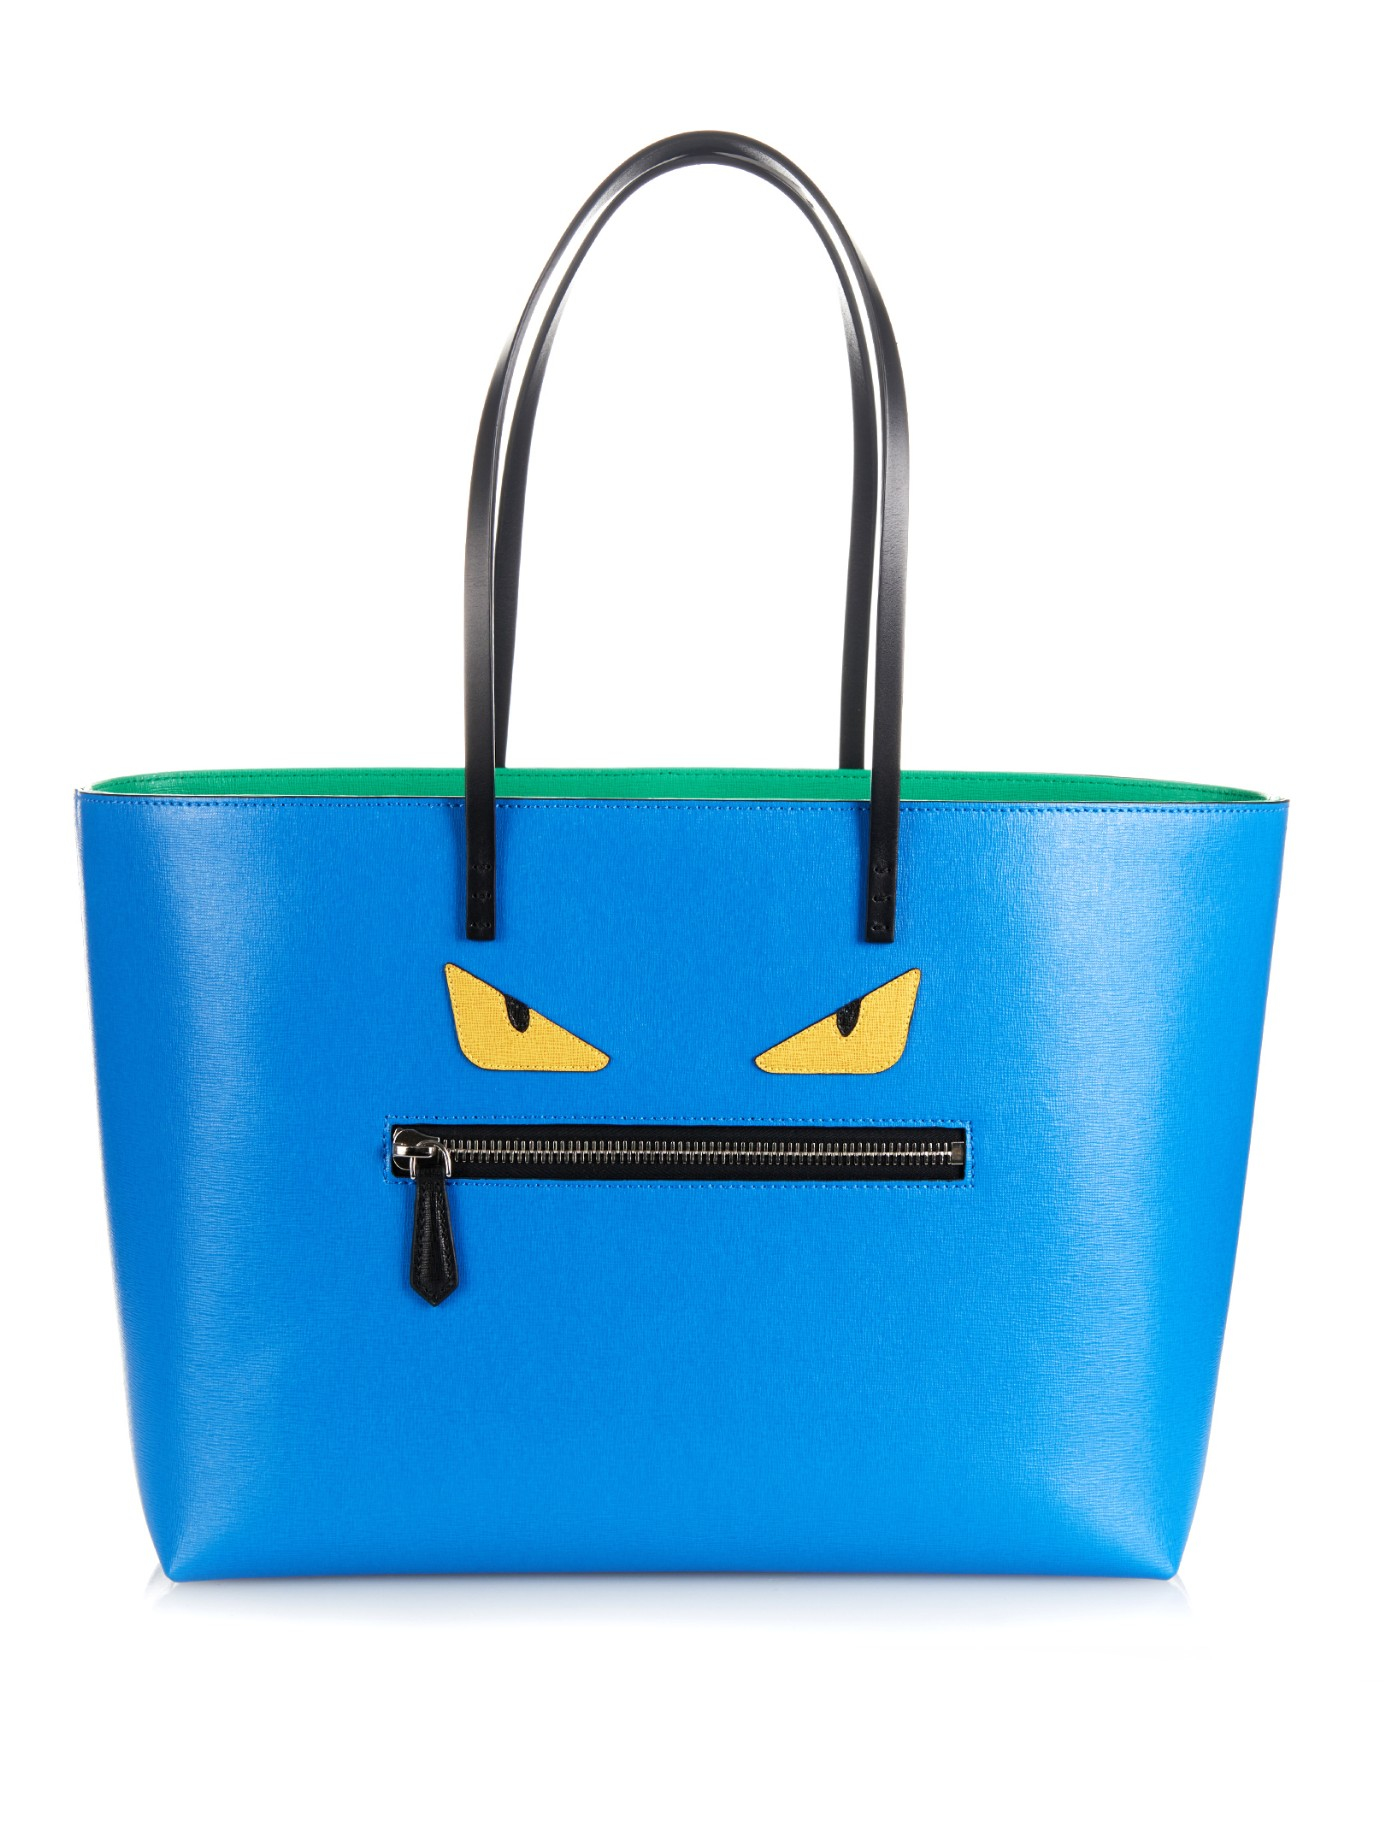 Lyst - Fendi Roll Leather Tote in Blue 52be911b1419e